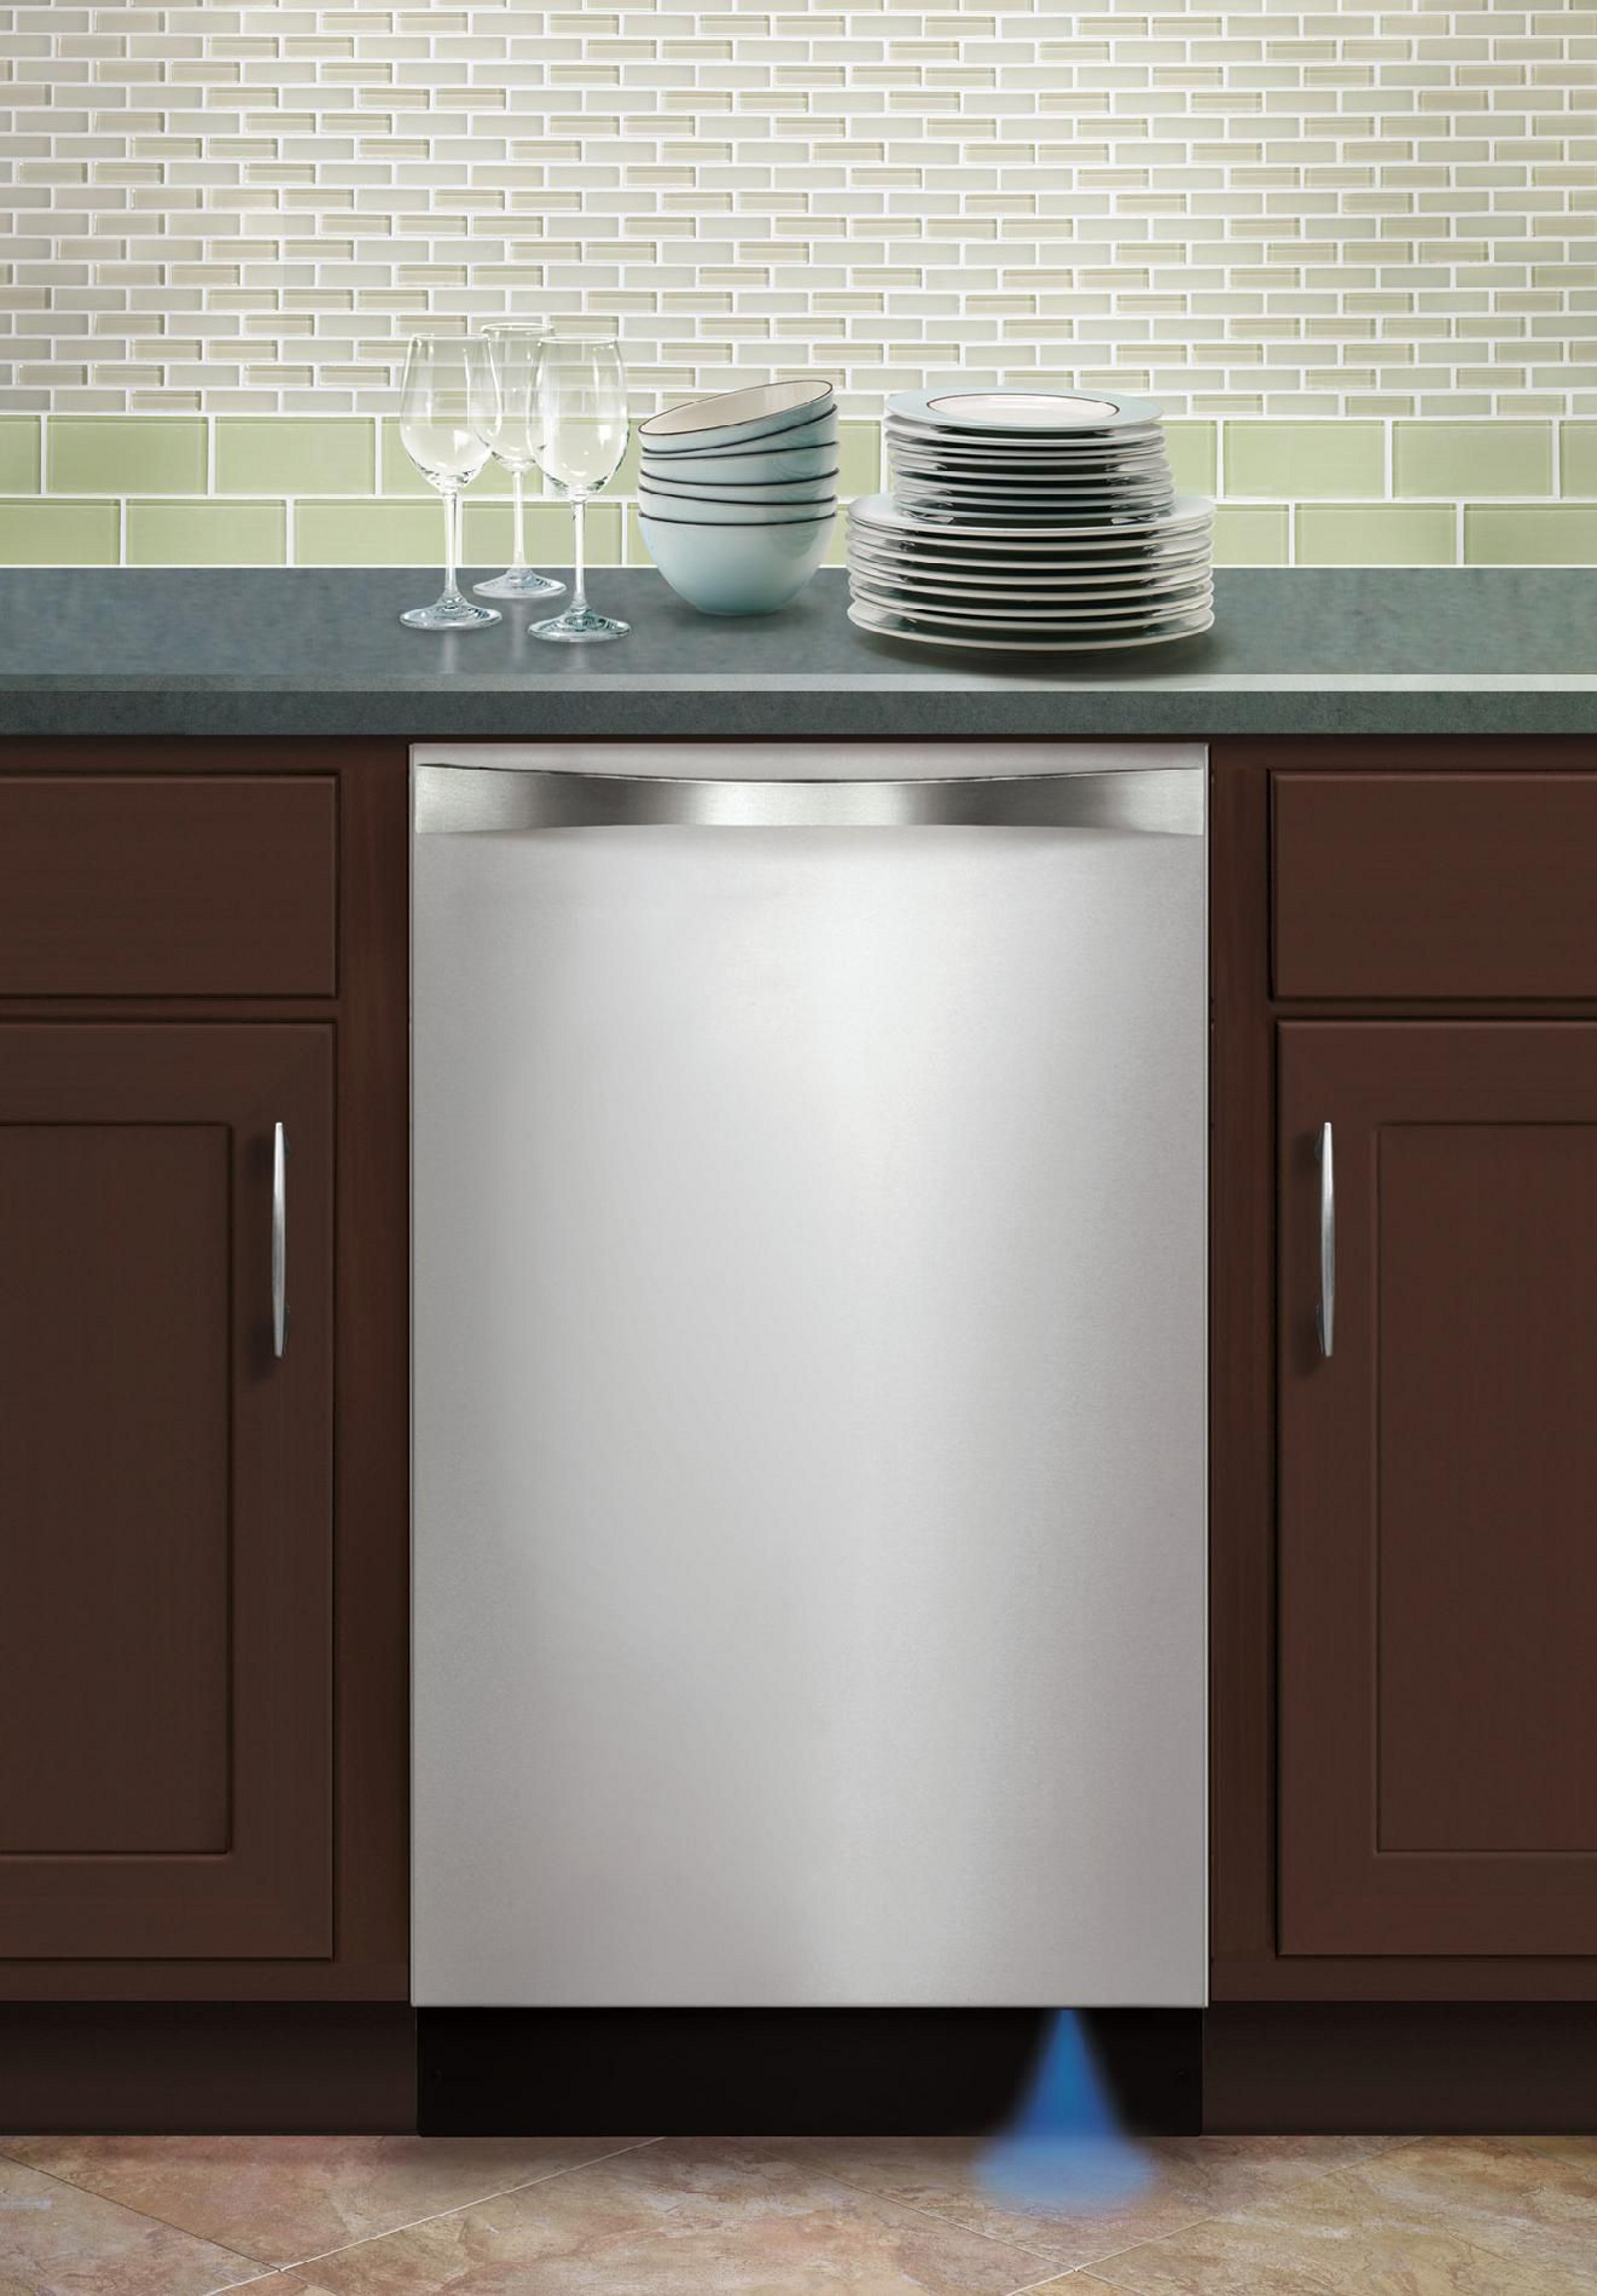 "Kenmore Elite 14683 18"" Built-In Dishwasher - Stainless Steel"